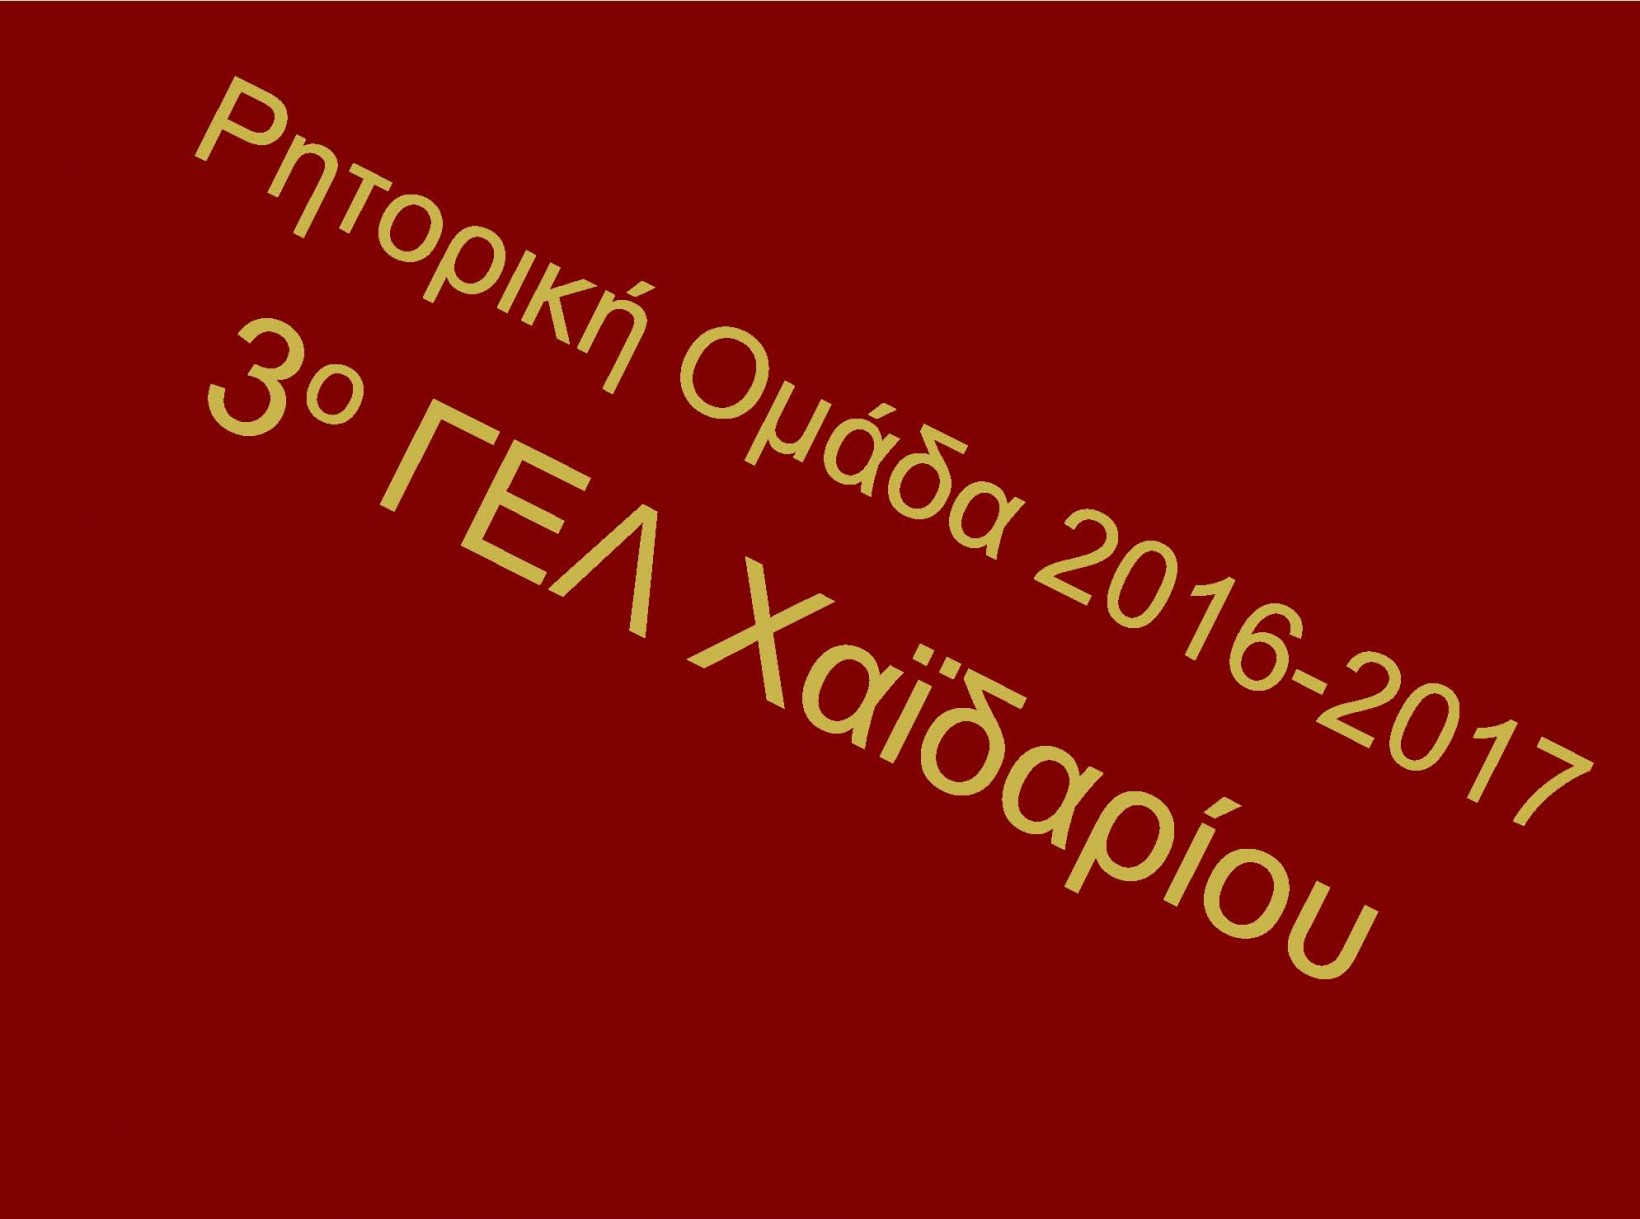 Pages from Pητορικη